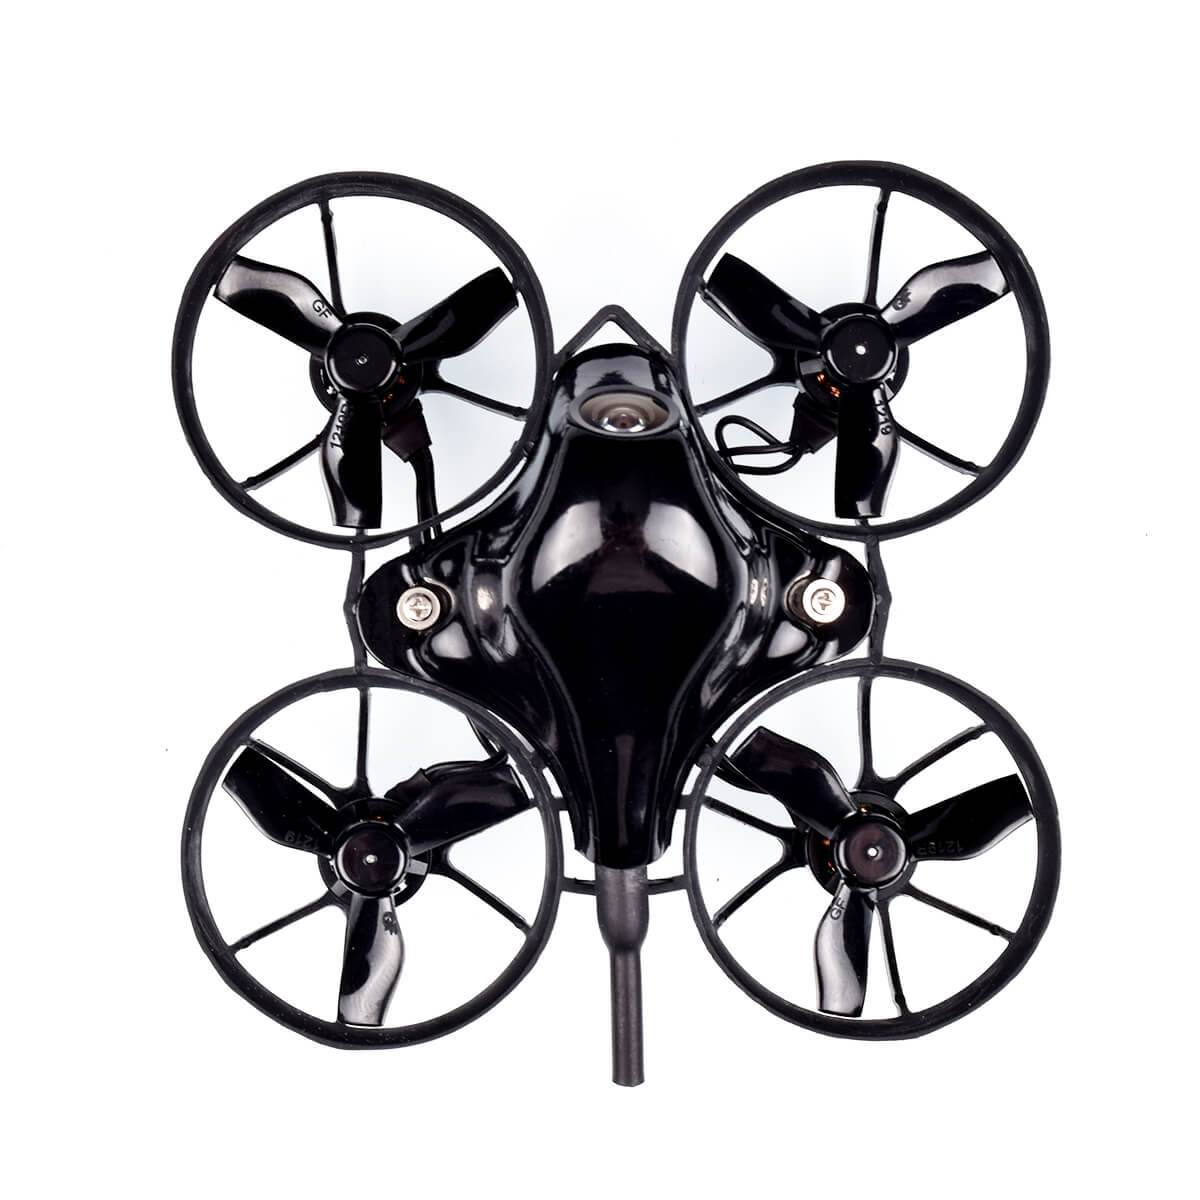 Pack BLACK Meteor 65 SE Brushless (1S) - FRSKY